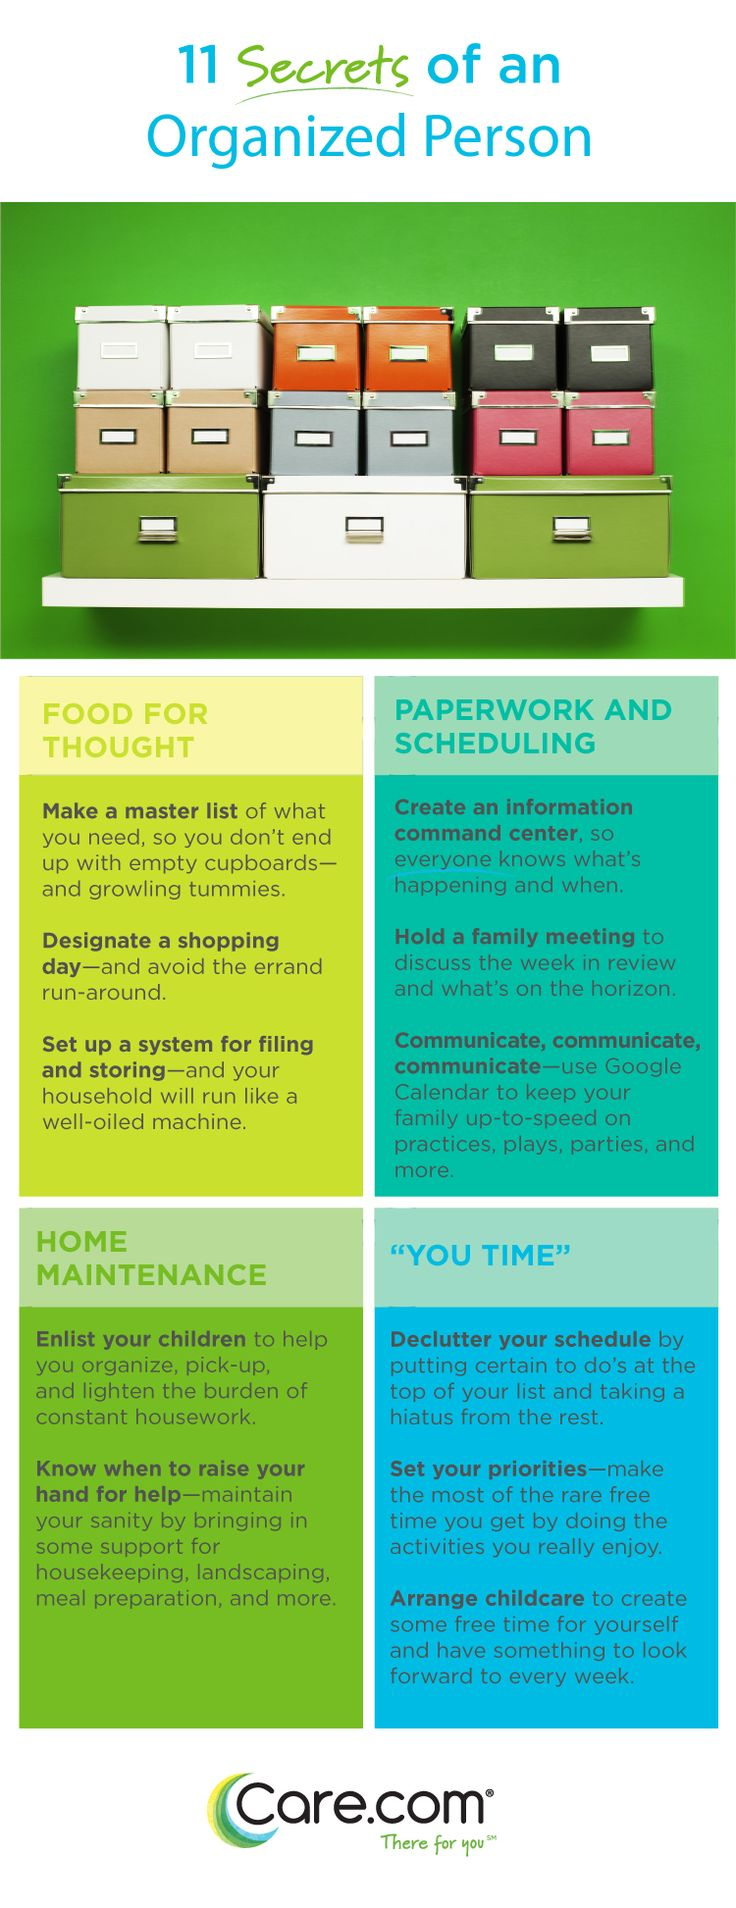 Secrets of an Organized Person - 11 Tips to involve your family in the process of maintaining your home.